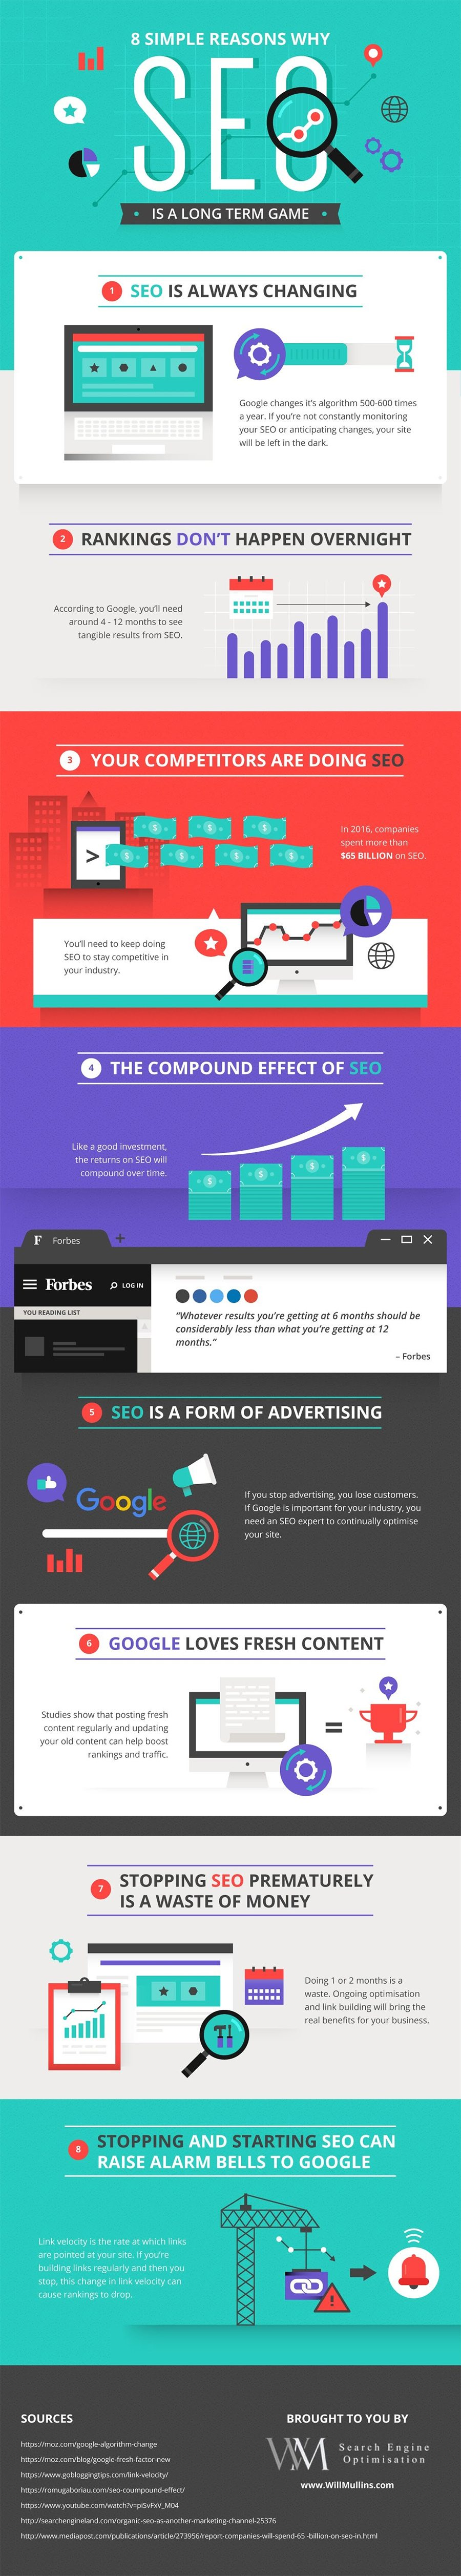 How Long Does SEO Take? 8 Reasons Why You Should Commit Long-Term [Infographic] | Social Media Today